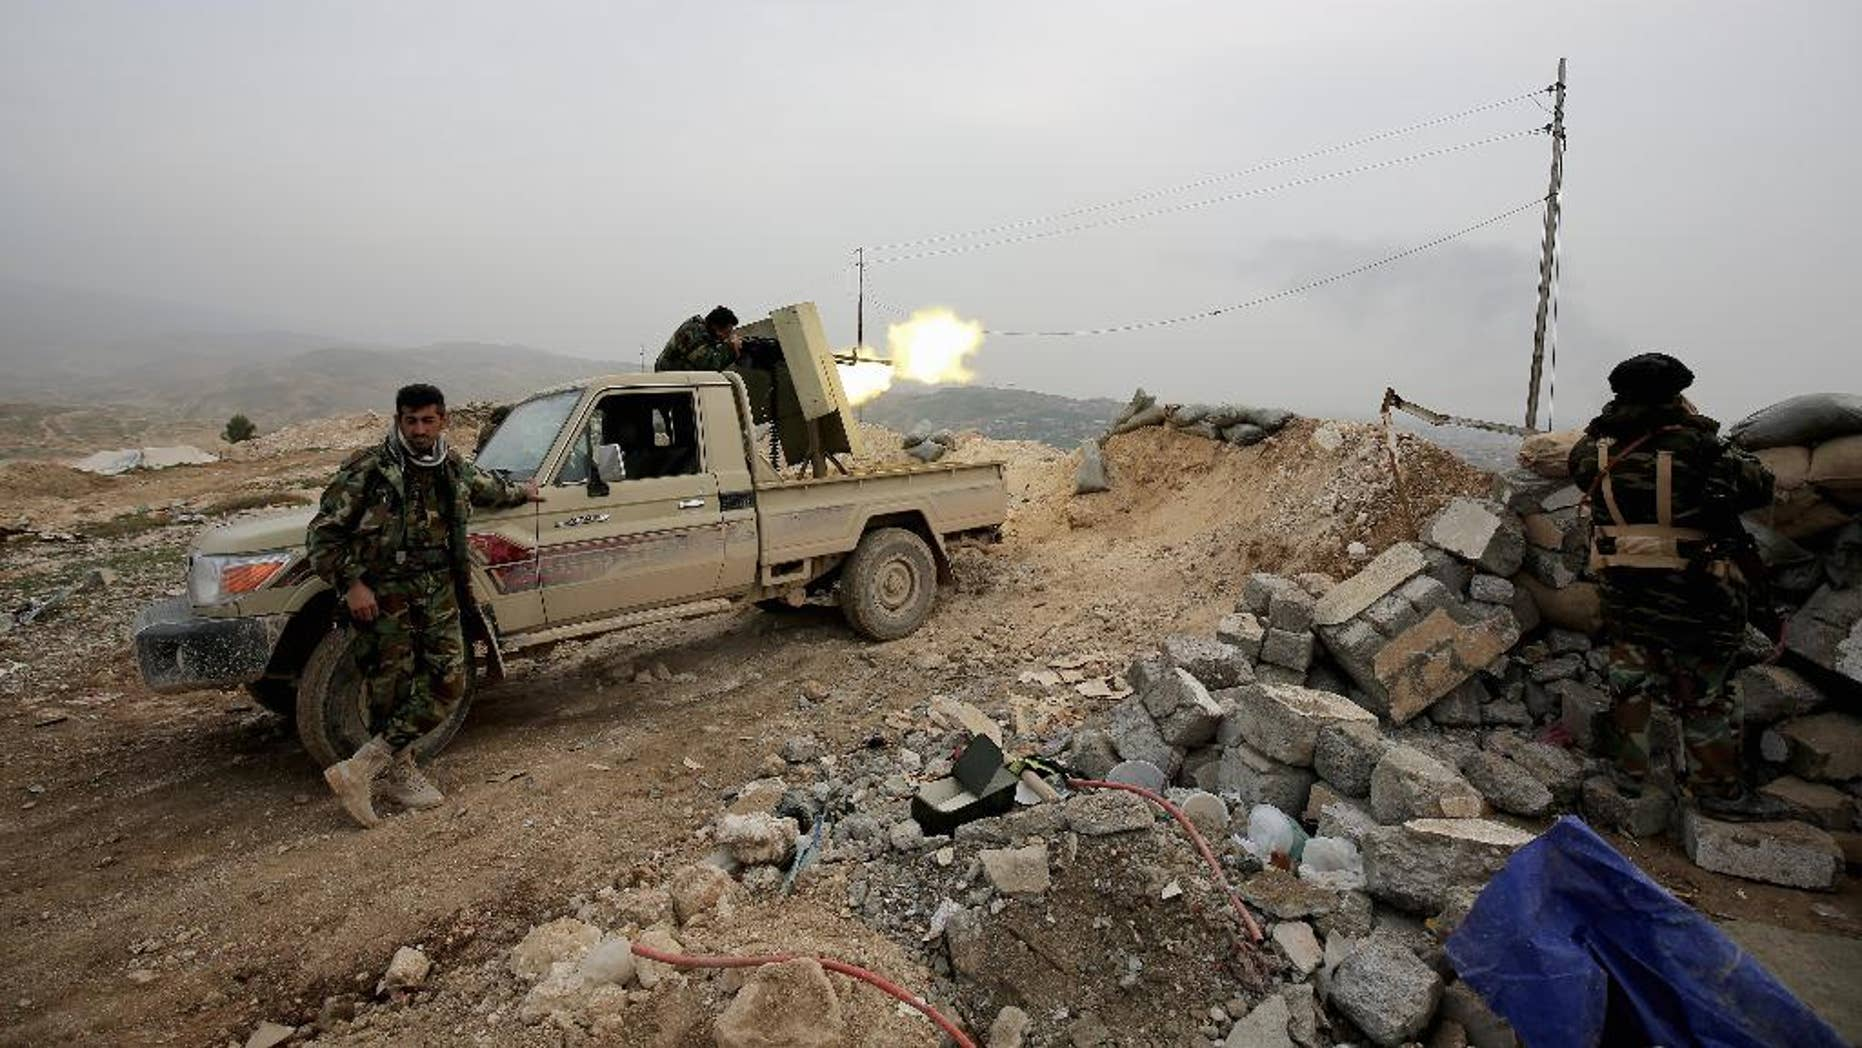 Jan. 29, 2015: In this file photo, a Kurdish peshmerga fighter fires a weapon towards positions of the Islamic State group who are 500 meters or half a mile away, overlooking the strategic town of Sinjar, northern Iraq. While Islamic State fighters have been forced to retreat from Kobani, the strategic town on Syria's border with Turkey, they appear far from beaten in northern Iraq.